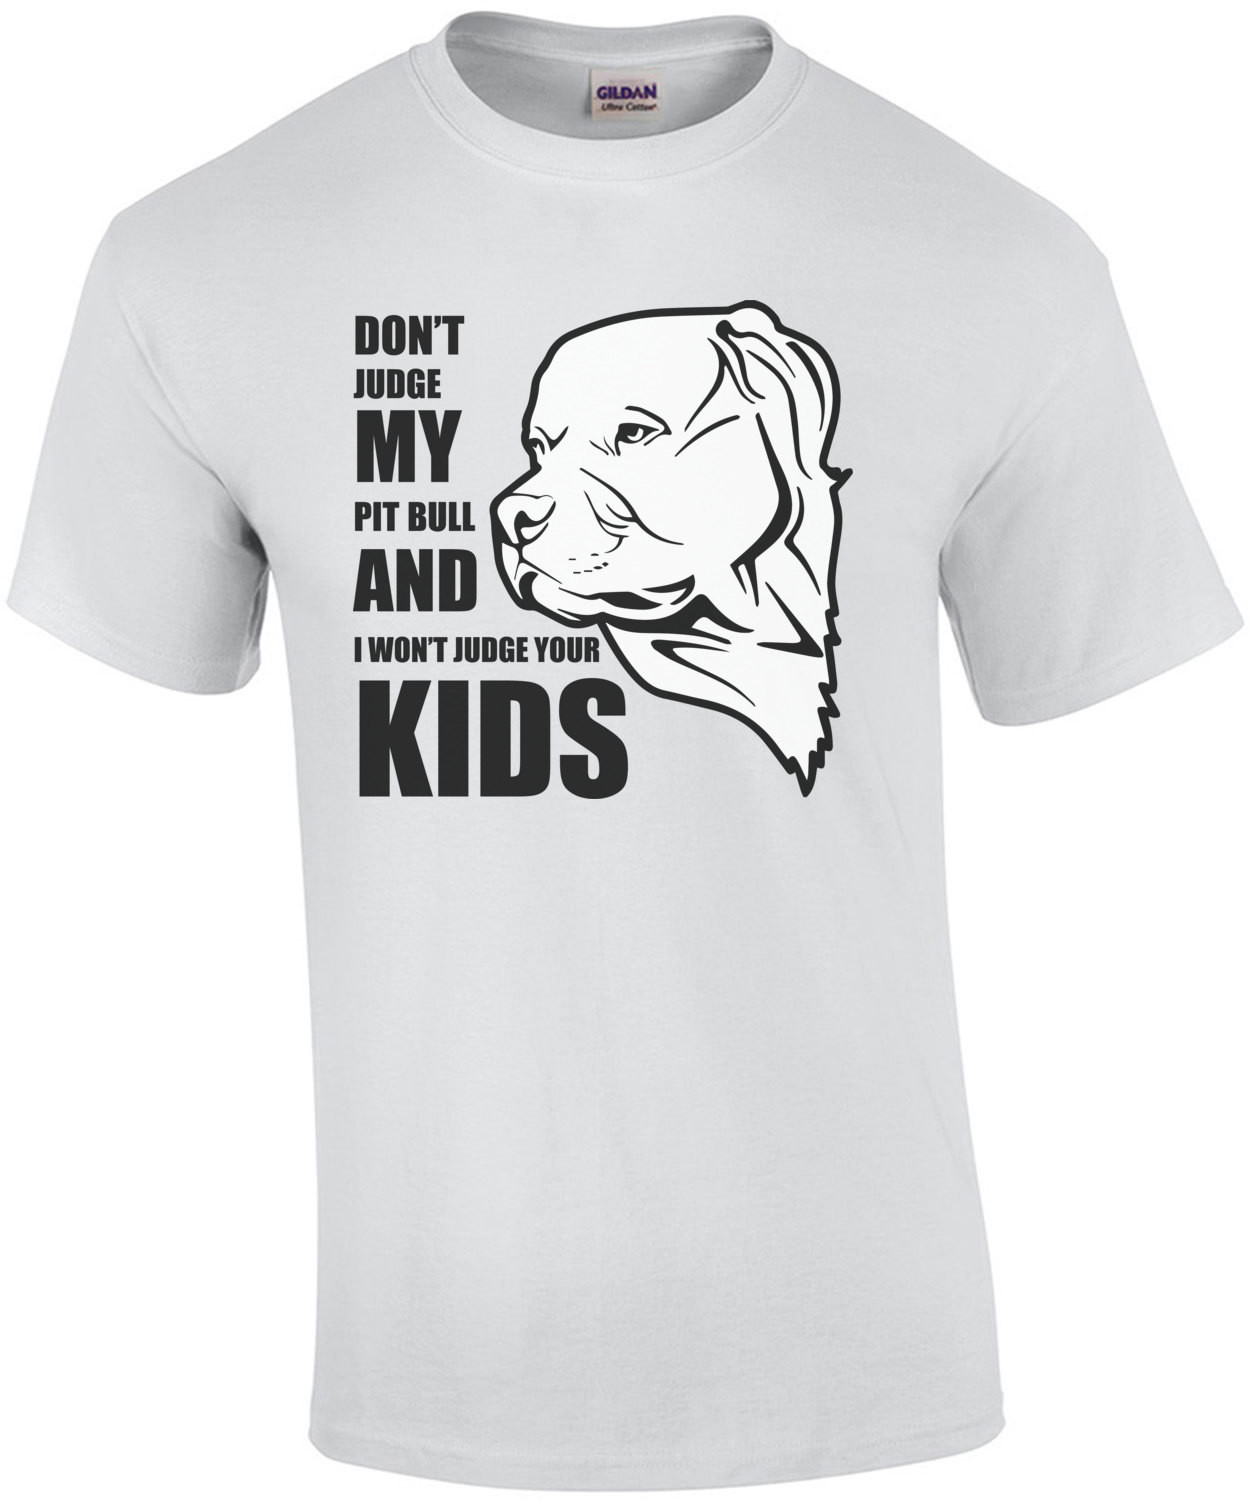 Don't judge my pit bull and I won't judge your kids - pit bull t-shirt